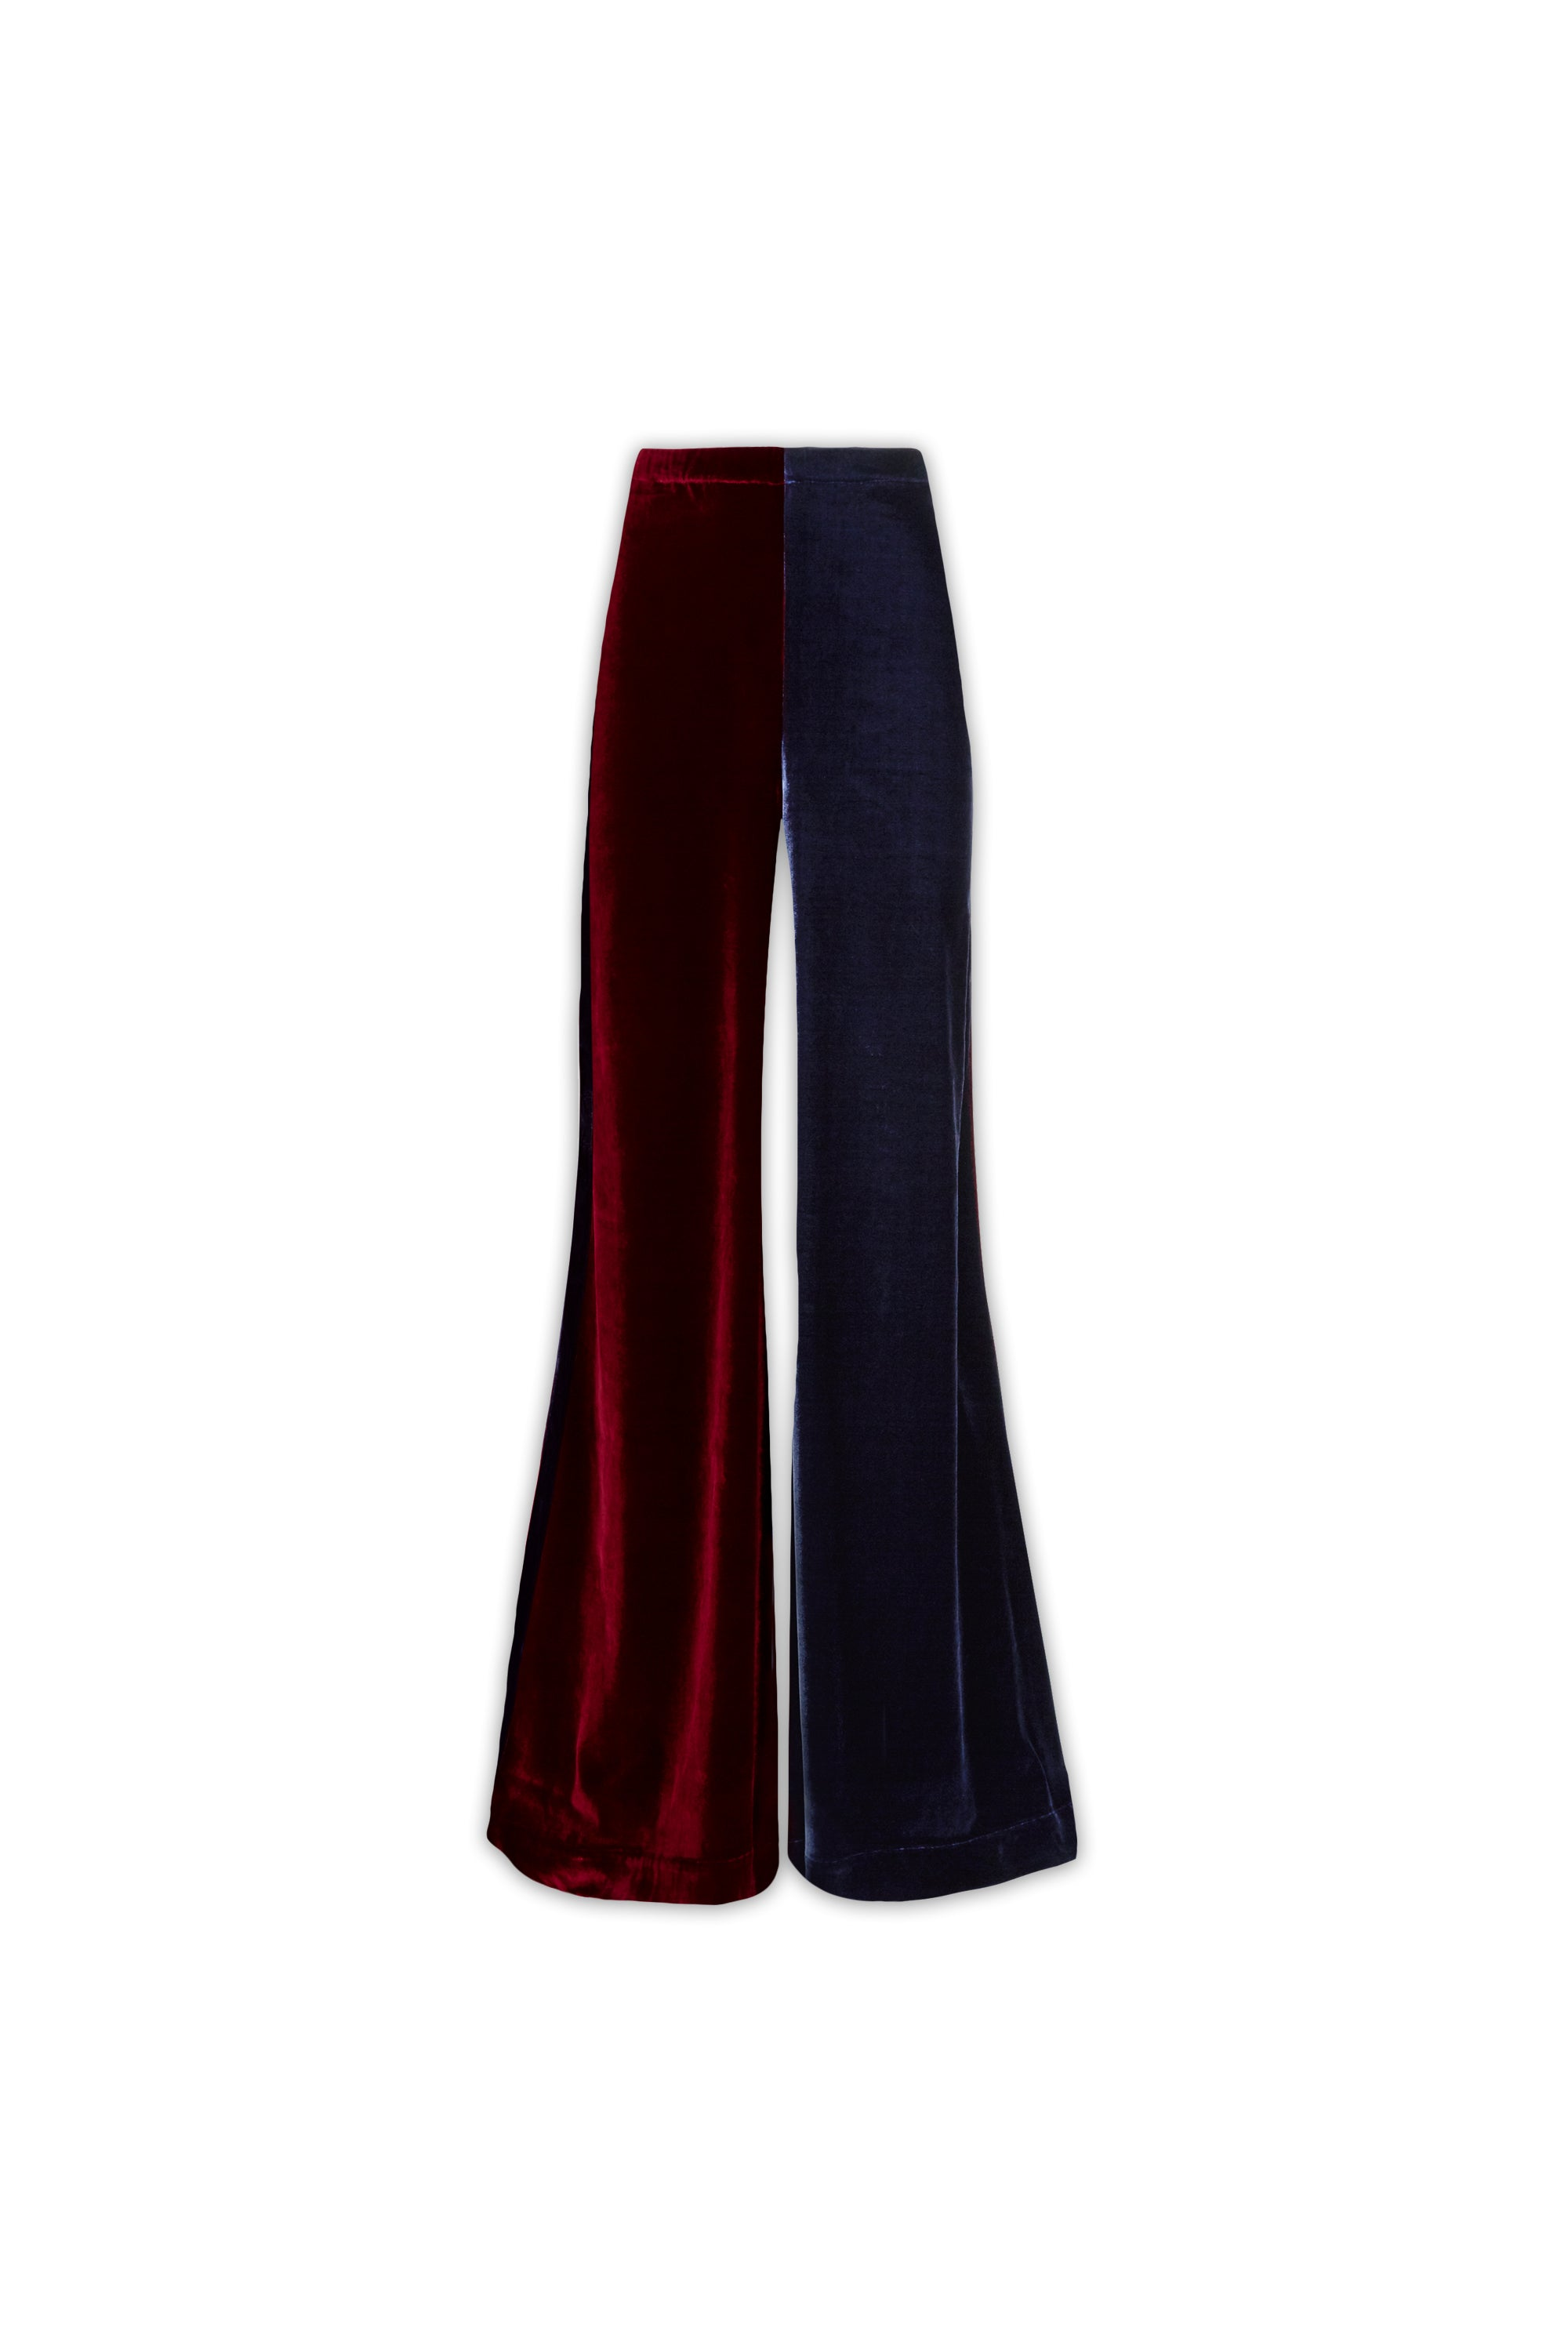 The Flare Trousers - Insignia & Burgundy Two Tone Stretch Velvet